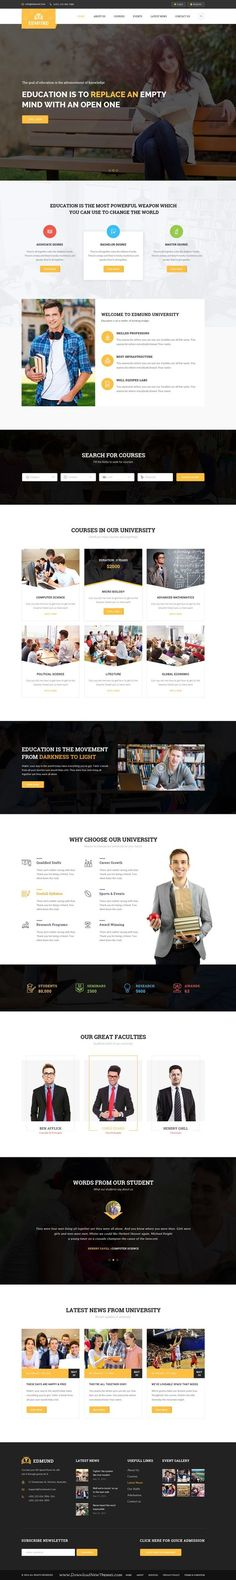 Edmund is wonderful premium #PSD Template for multipurpose #Education #website, includes 20 Total Pages. Download Now!: